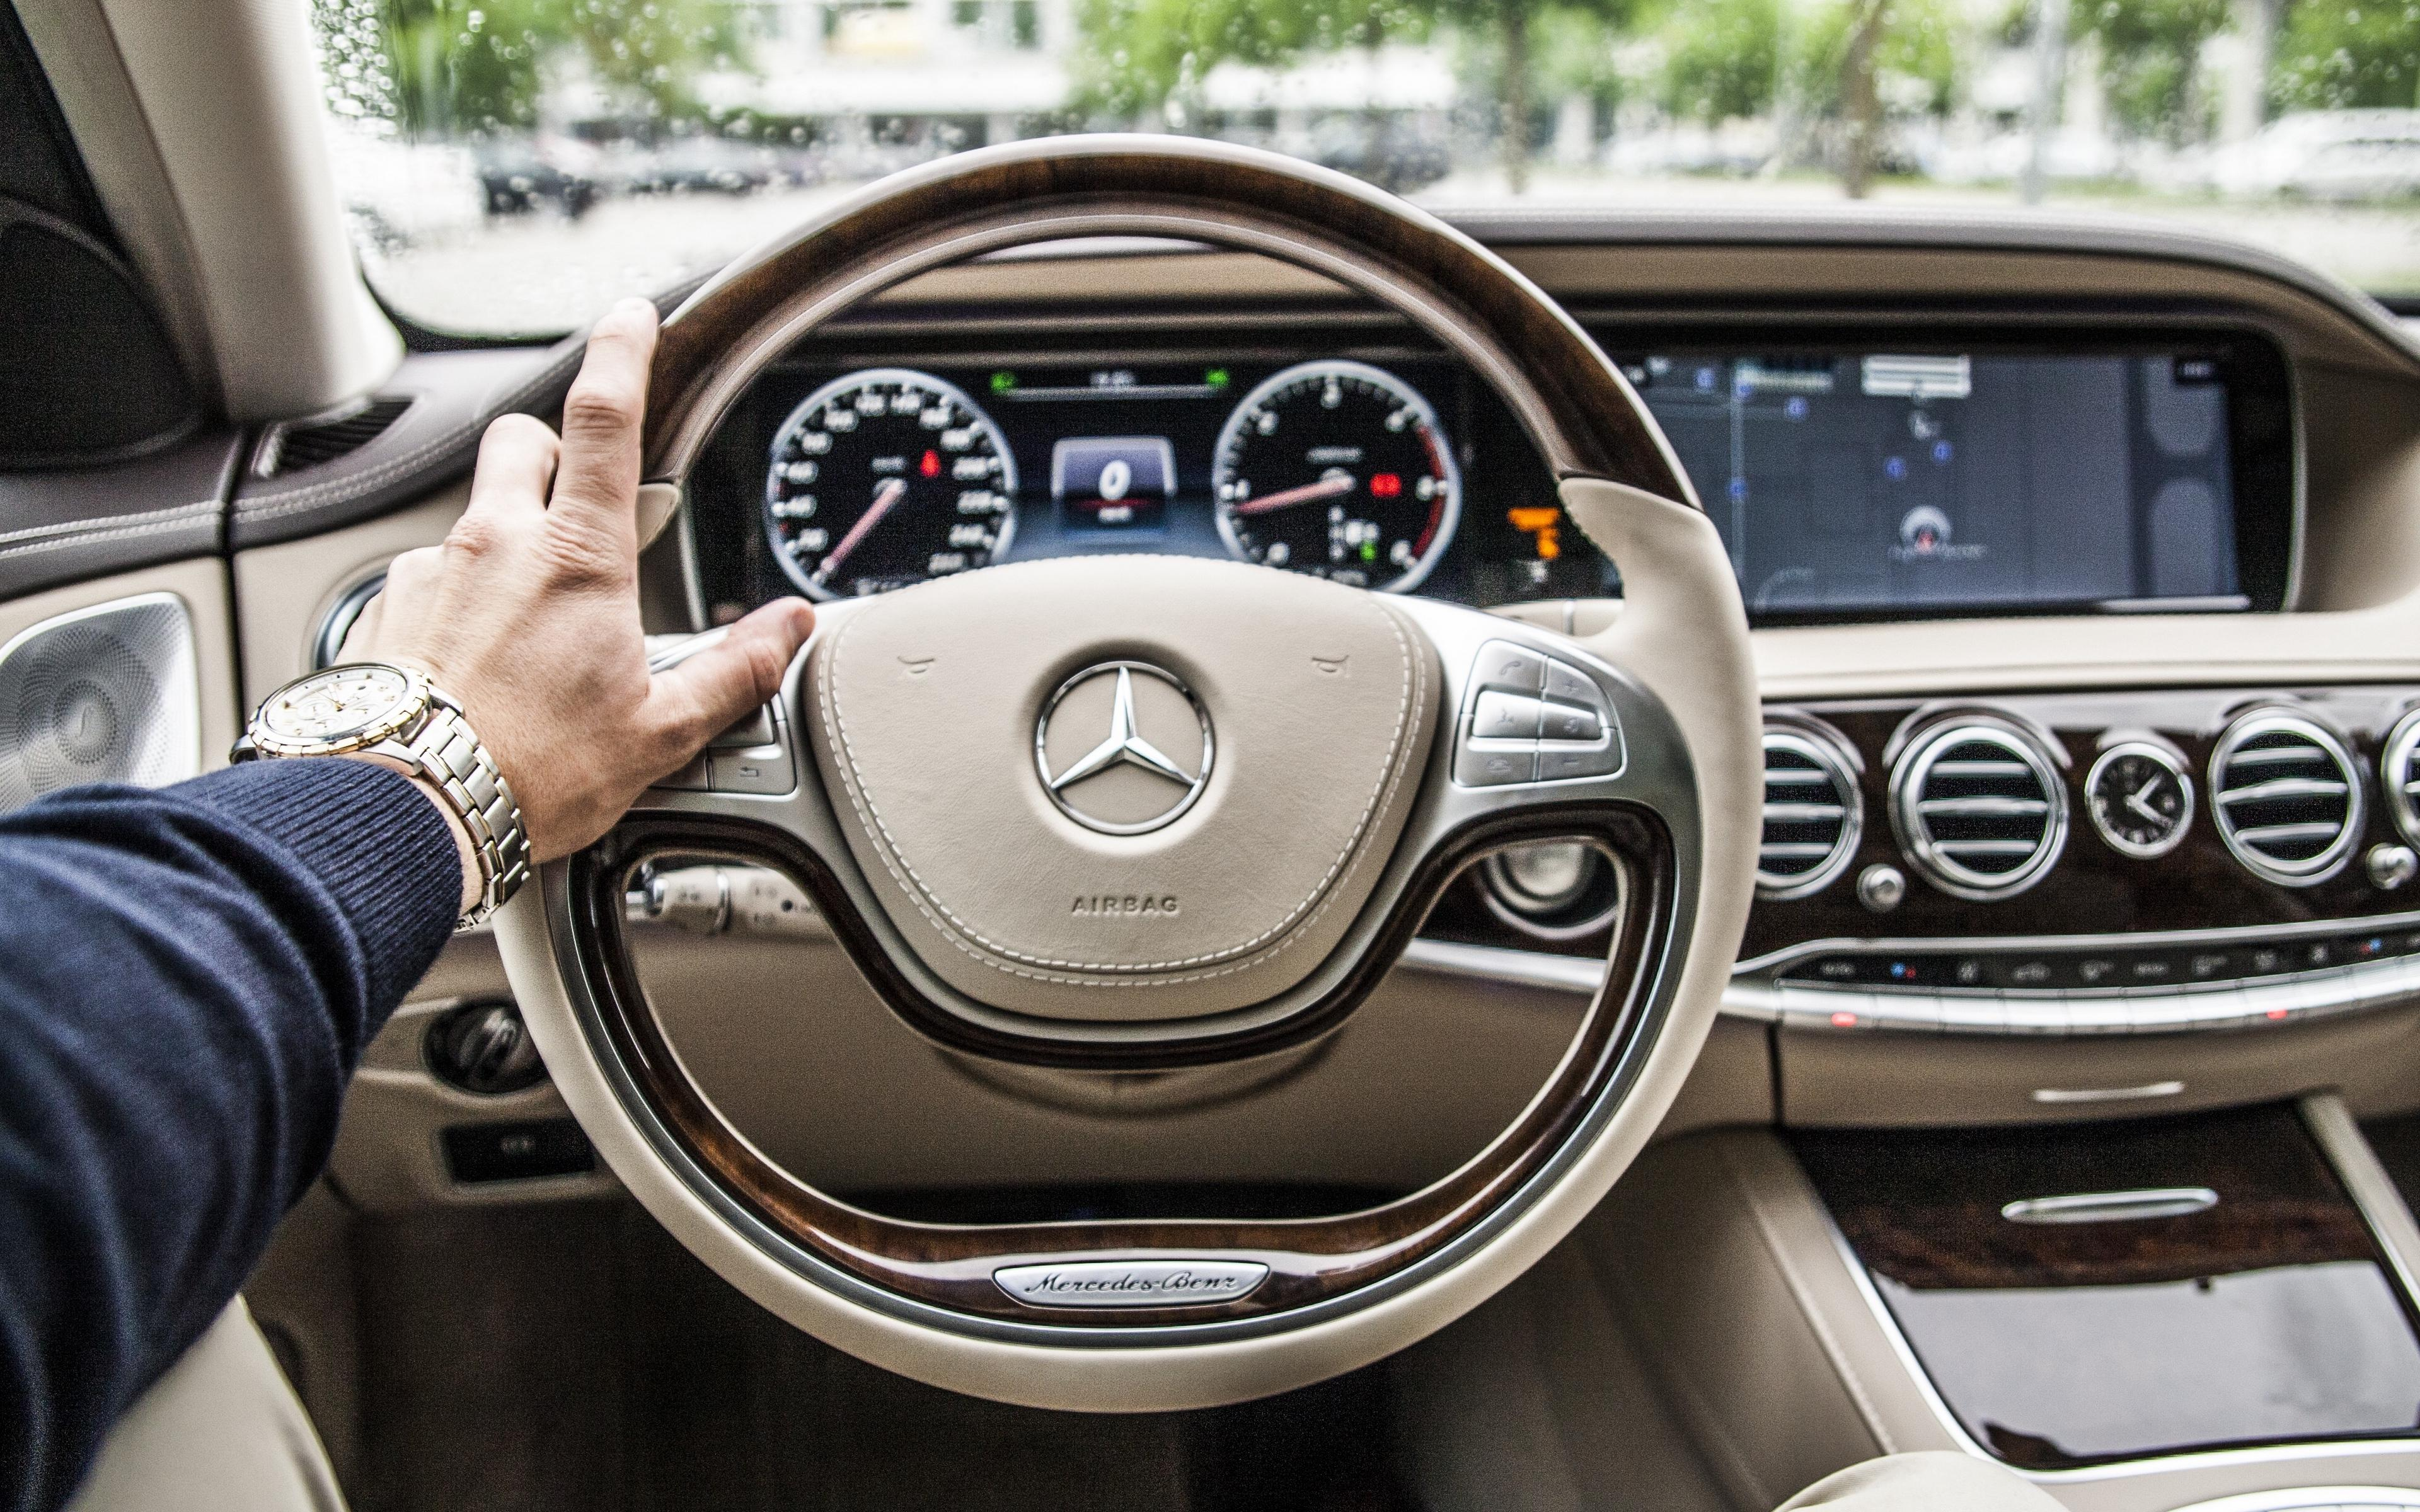 Download wallpapers 3840x2400 mercedes, car, steering wheel, interior